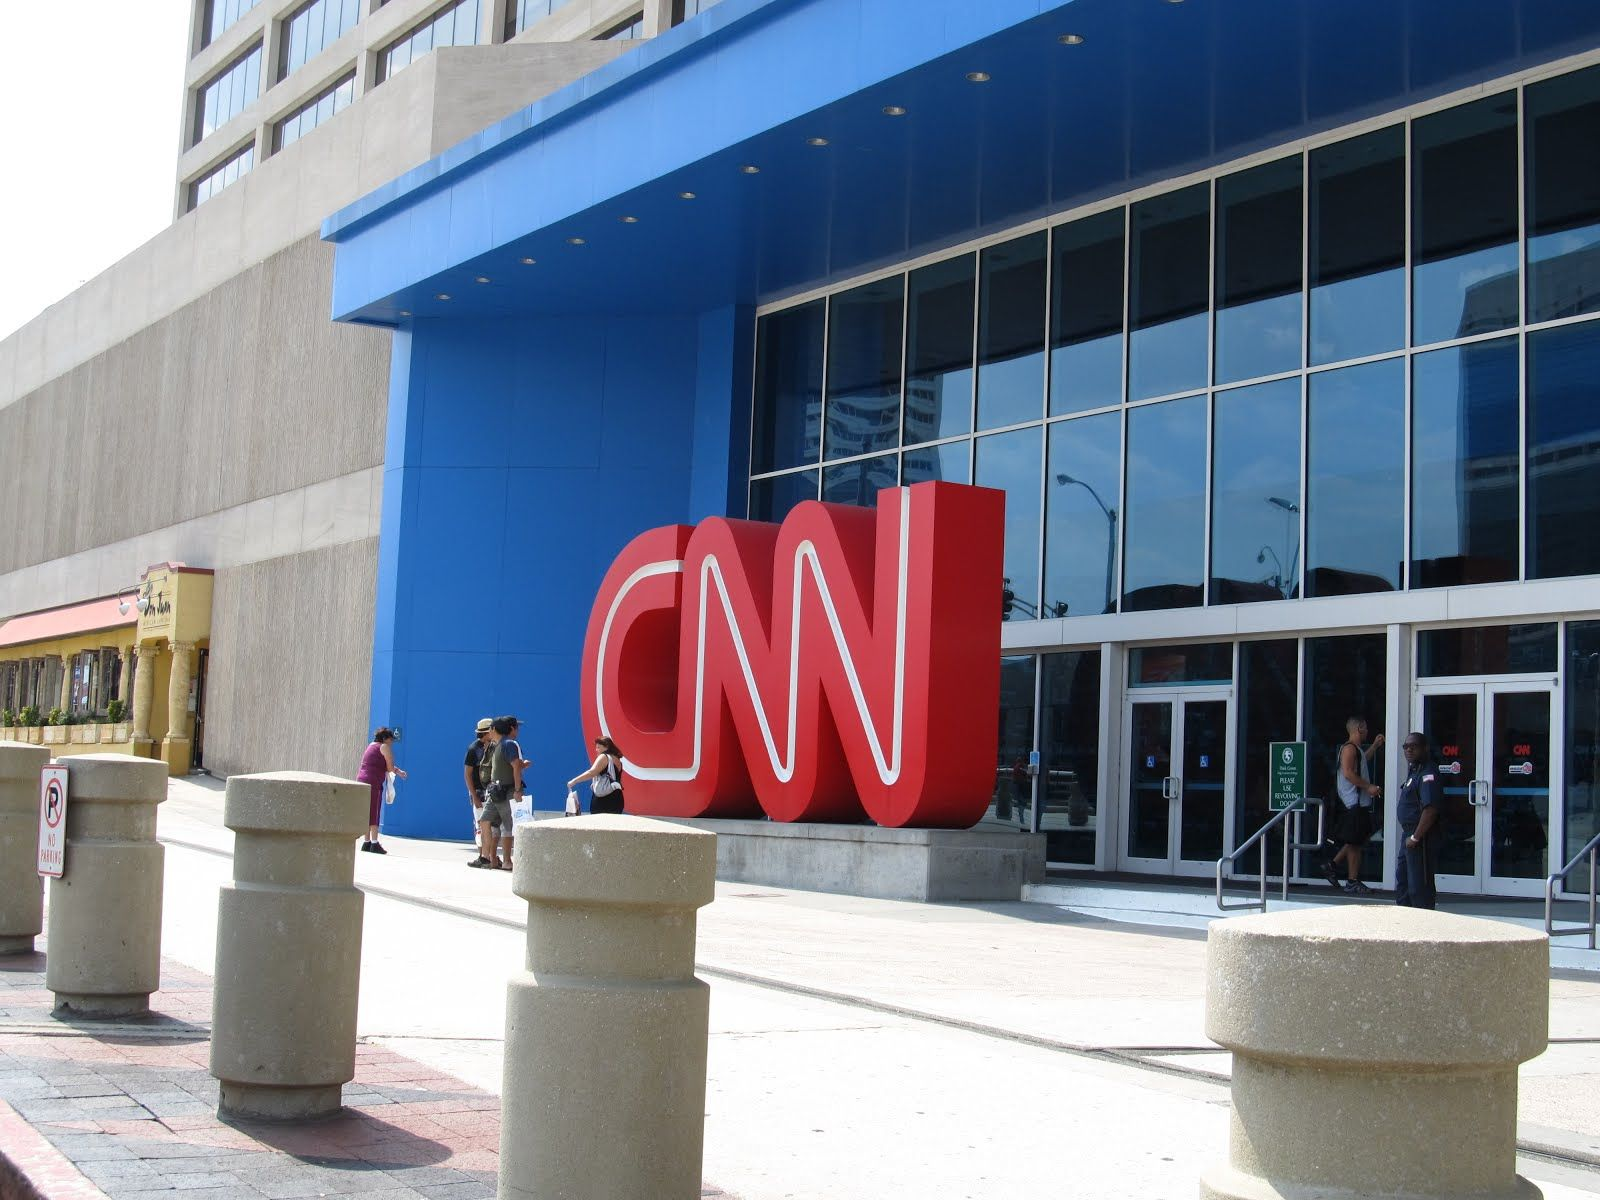 Cnn Phone Number To Call To Contact Cnn For Customer Service Technical Support Help And To Reach A Live Person Phone Numbers Phone Customer Service